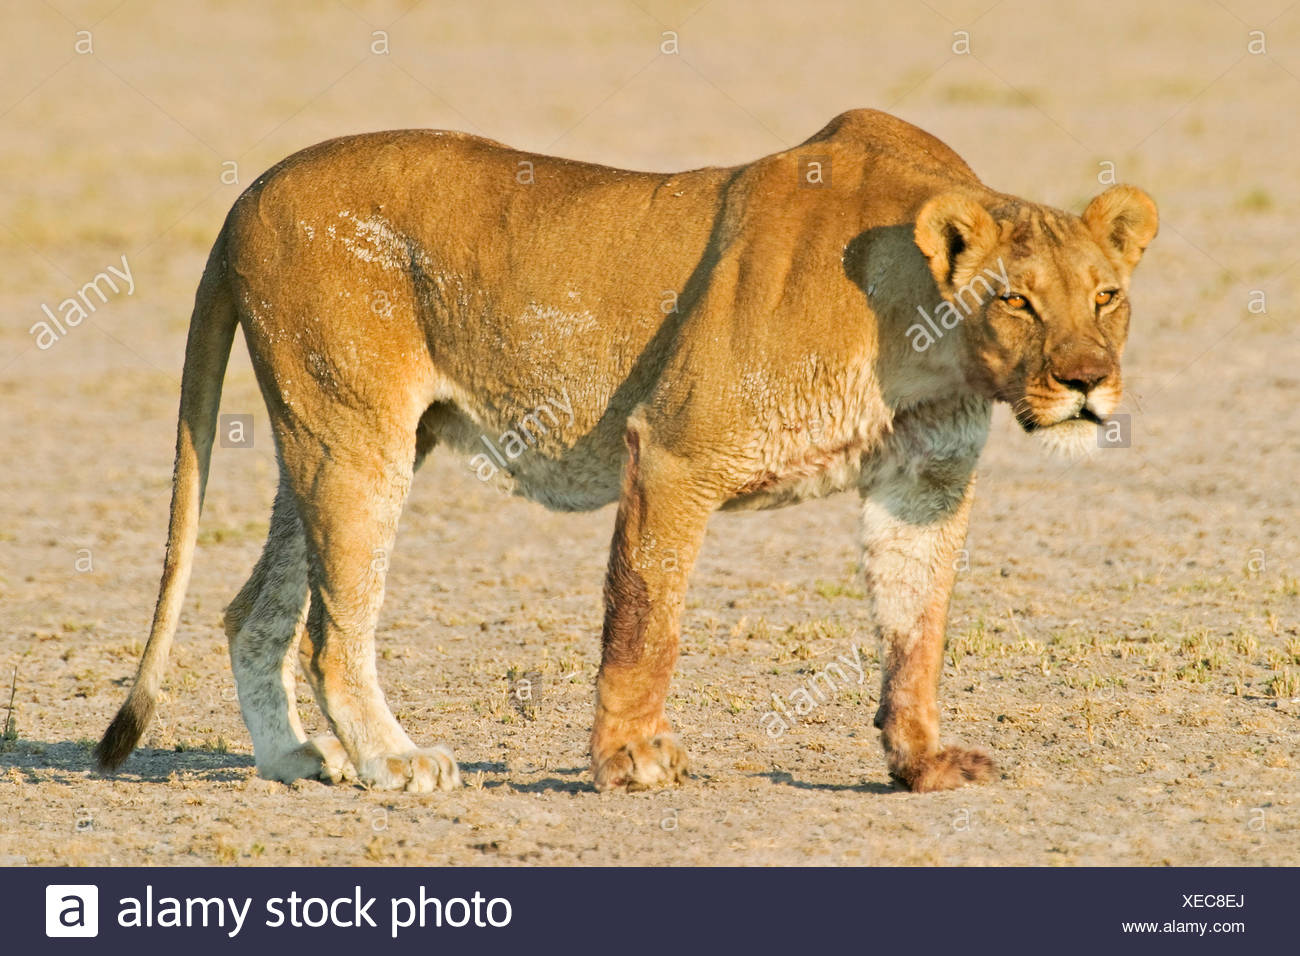 Lioness (Panthera leo) looks for prey, Nxai Pan, Makgadikgadi Pans National Park, Botswana, Africa Stock Photo